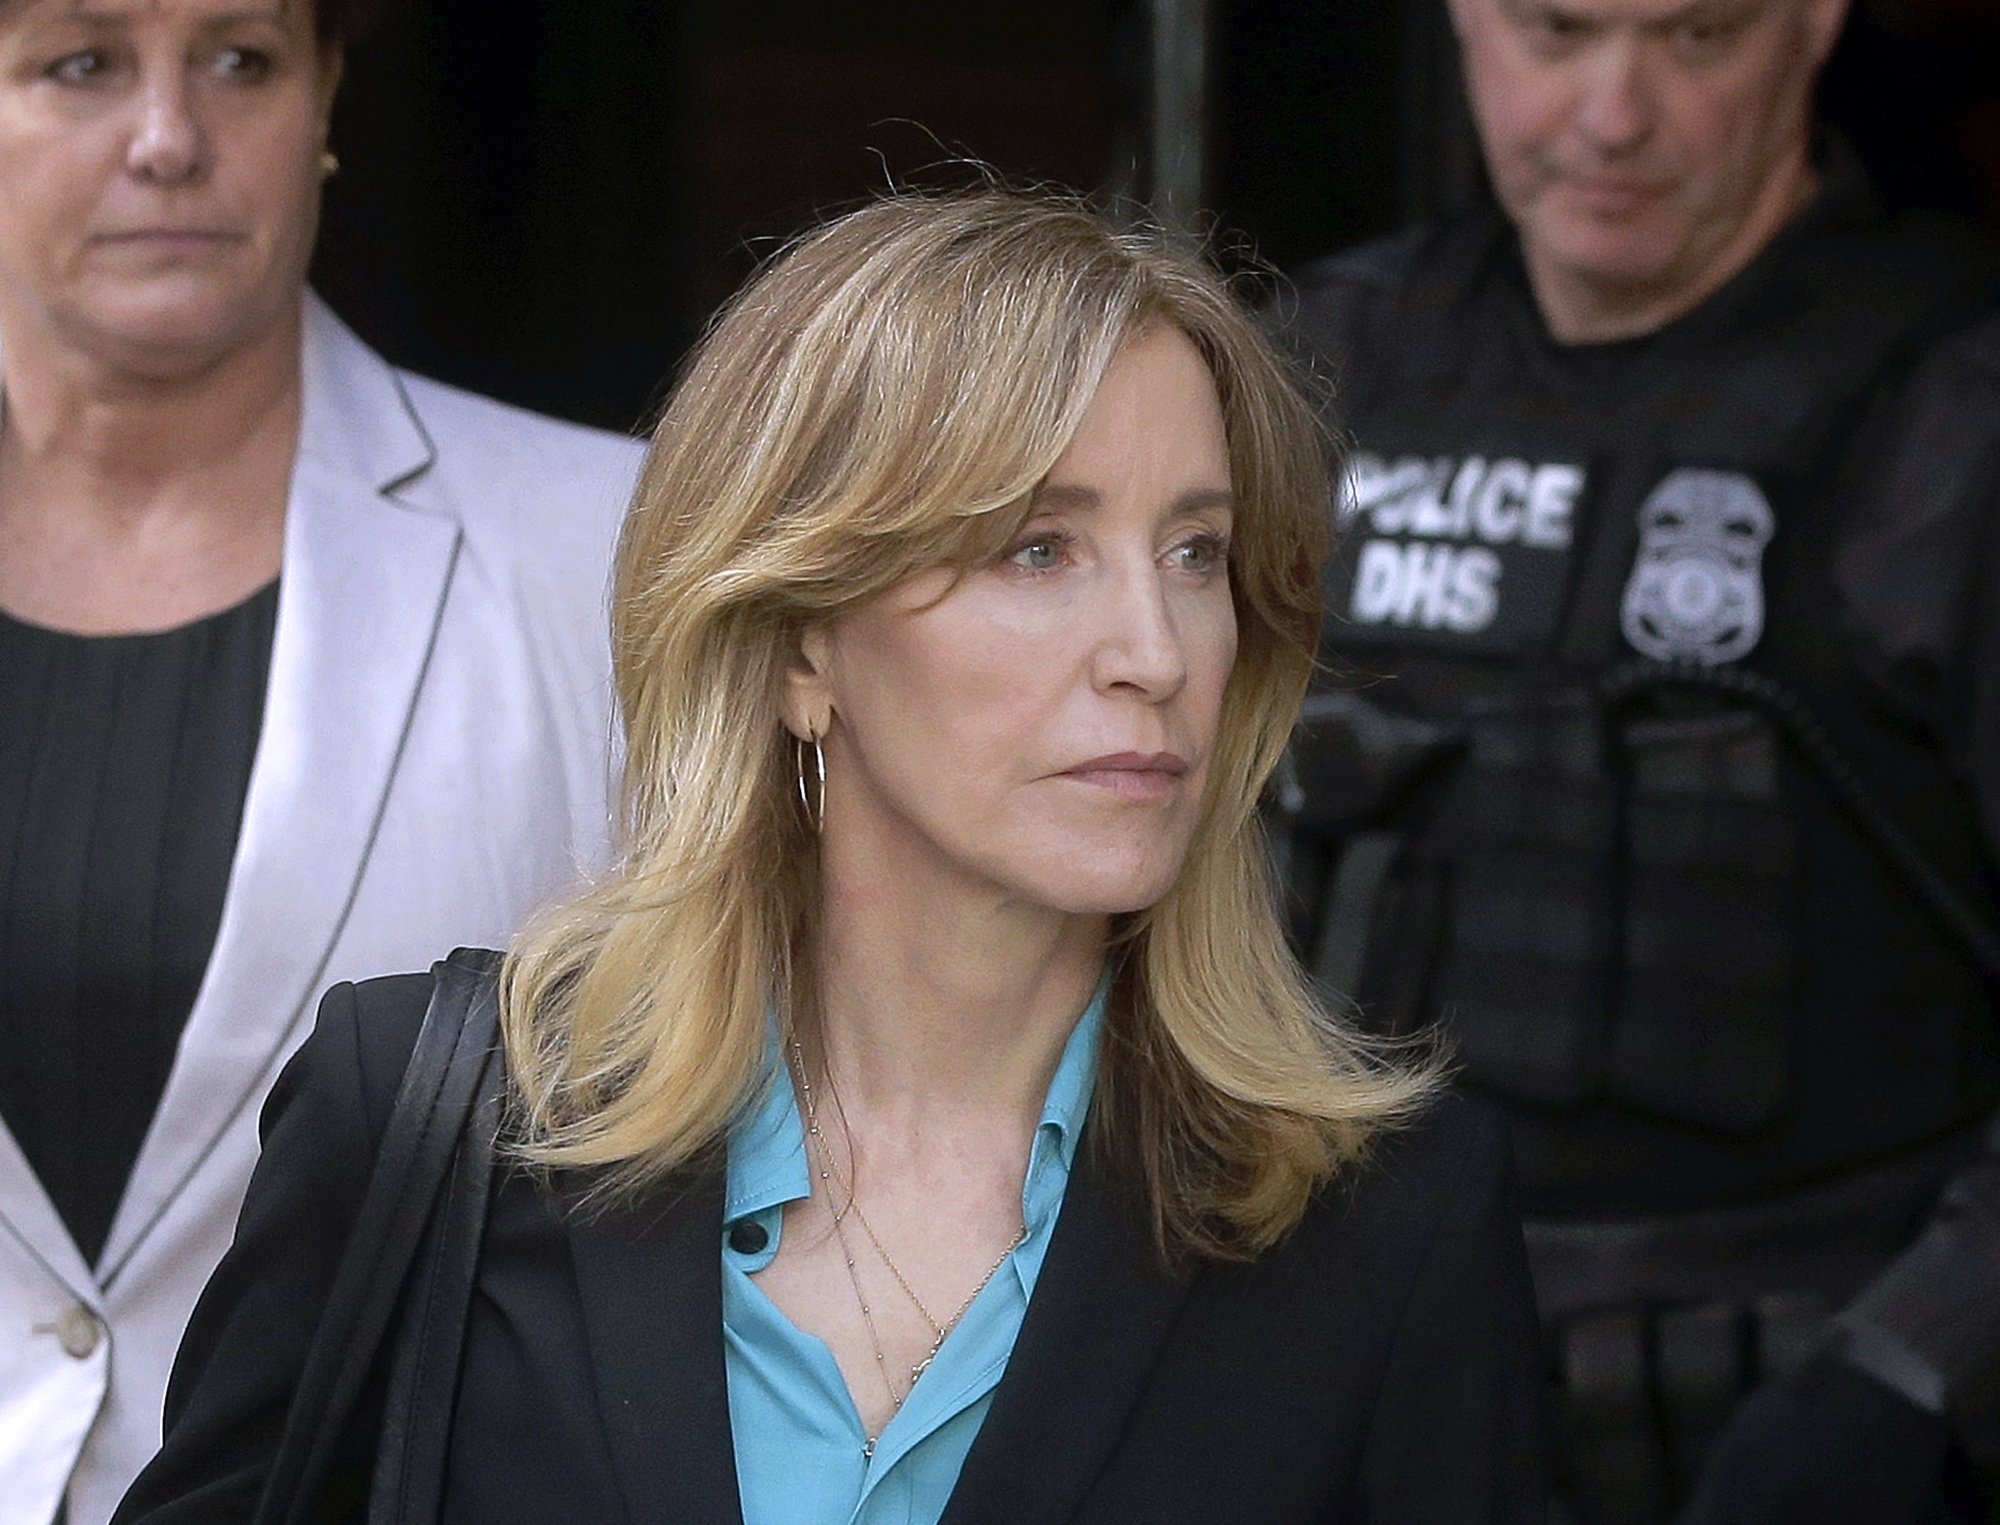 felicity-huffman-doesnt-regret-taking-responsibility-for-her-crime-even-if-she-gets-sentenced-to-prison